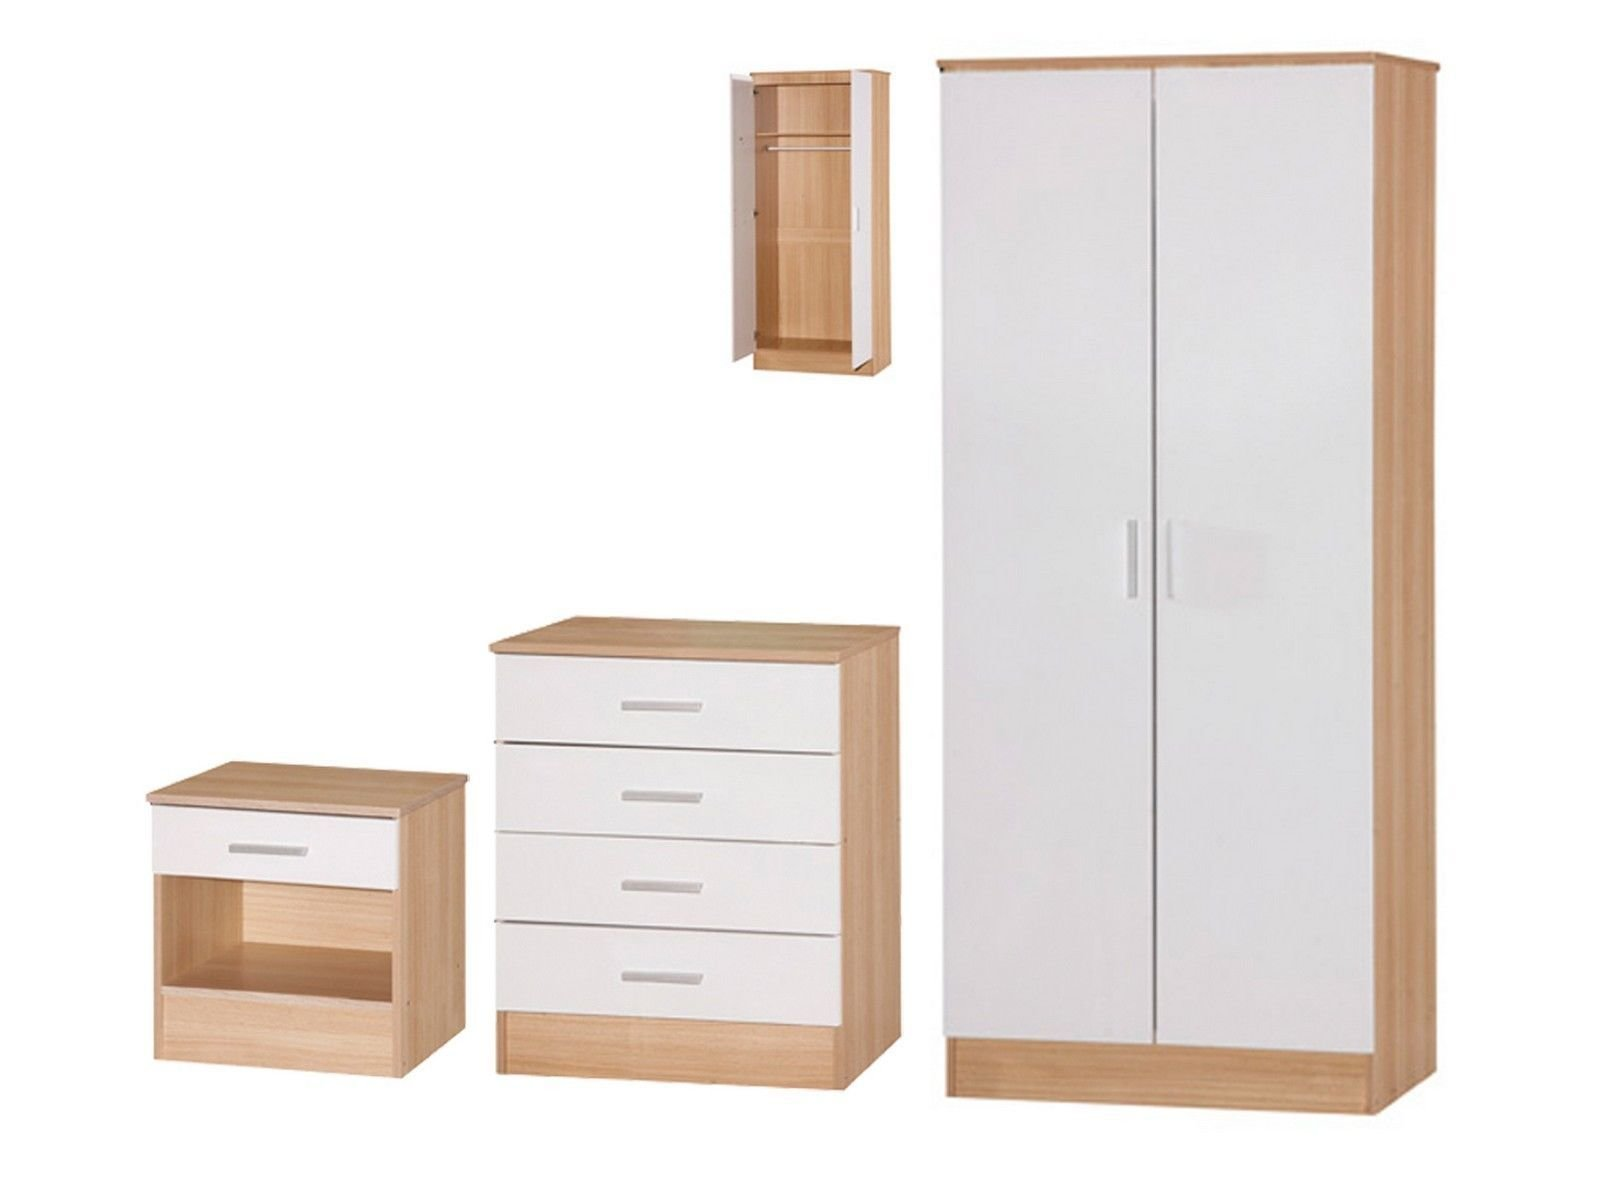 Best Galaxy Bedroom Set 3 Piece Wardrobe Chest Bedside With Pictures